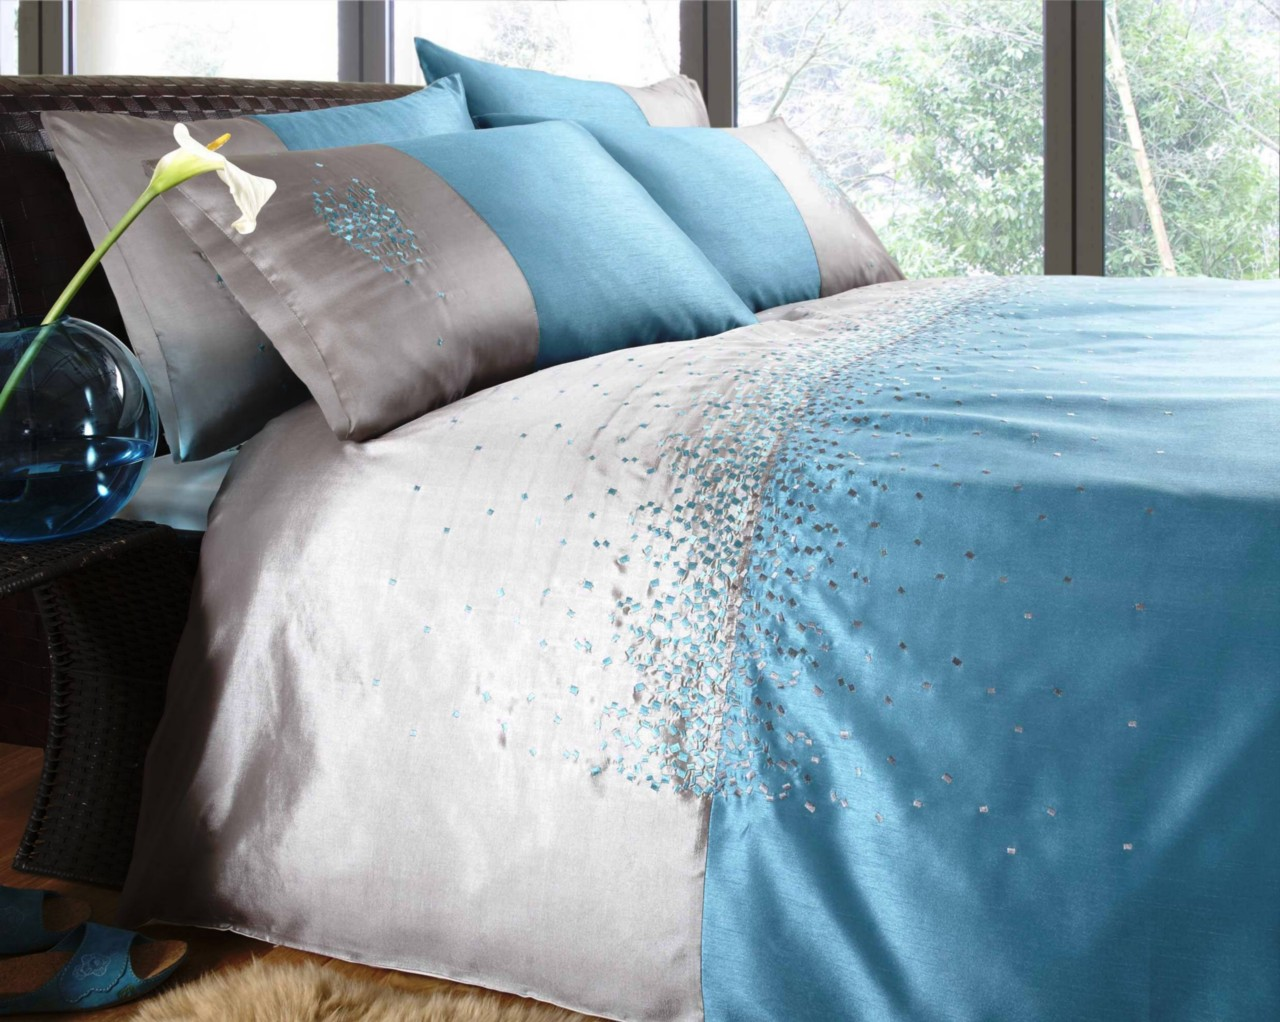 Turquoise Duvet Cover: ELEANOR JAMES SILVER TEAL TURQUOISE DUVET QUILT COVER